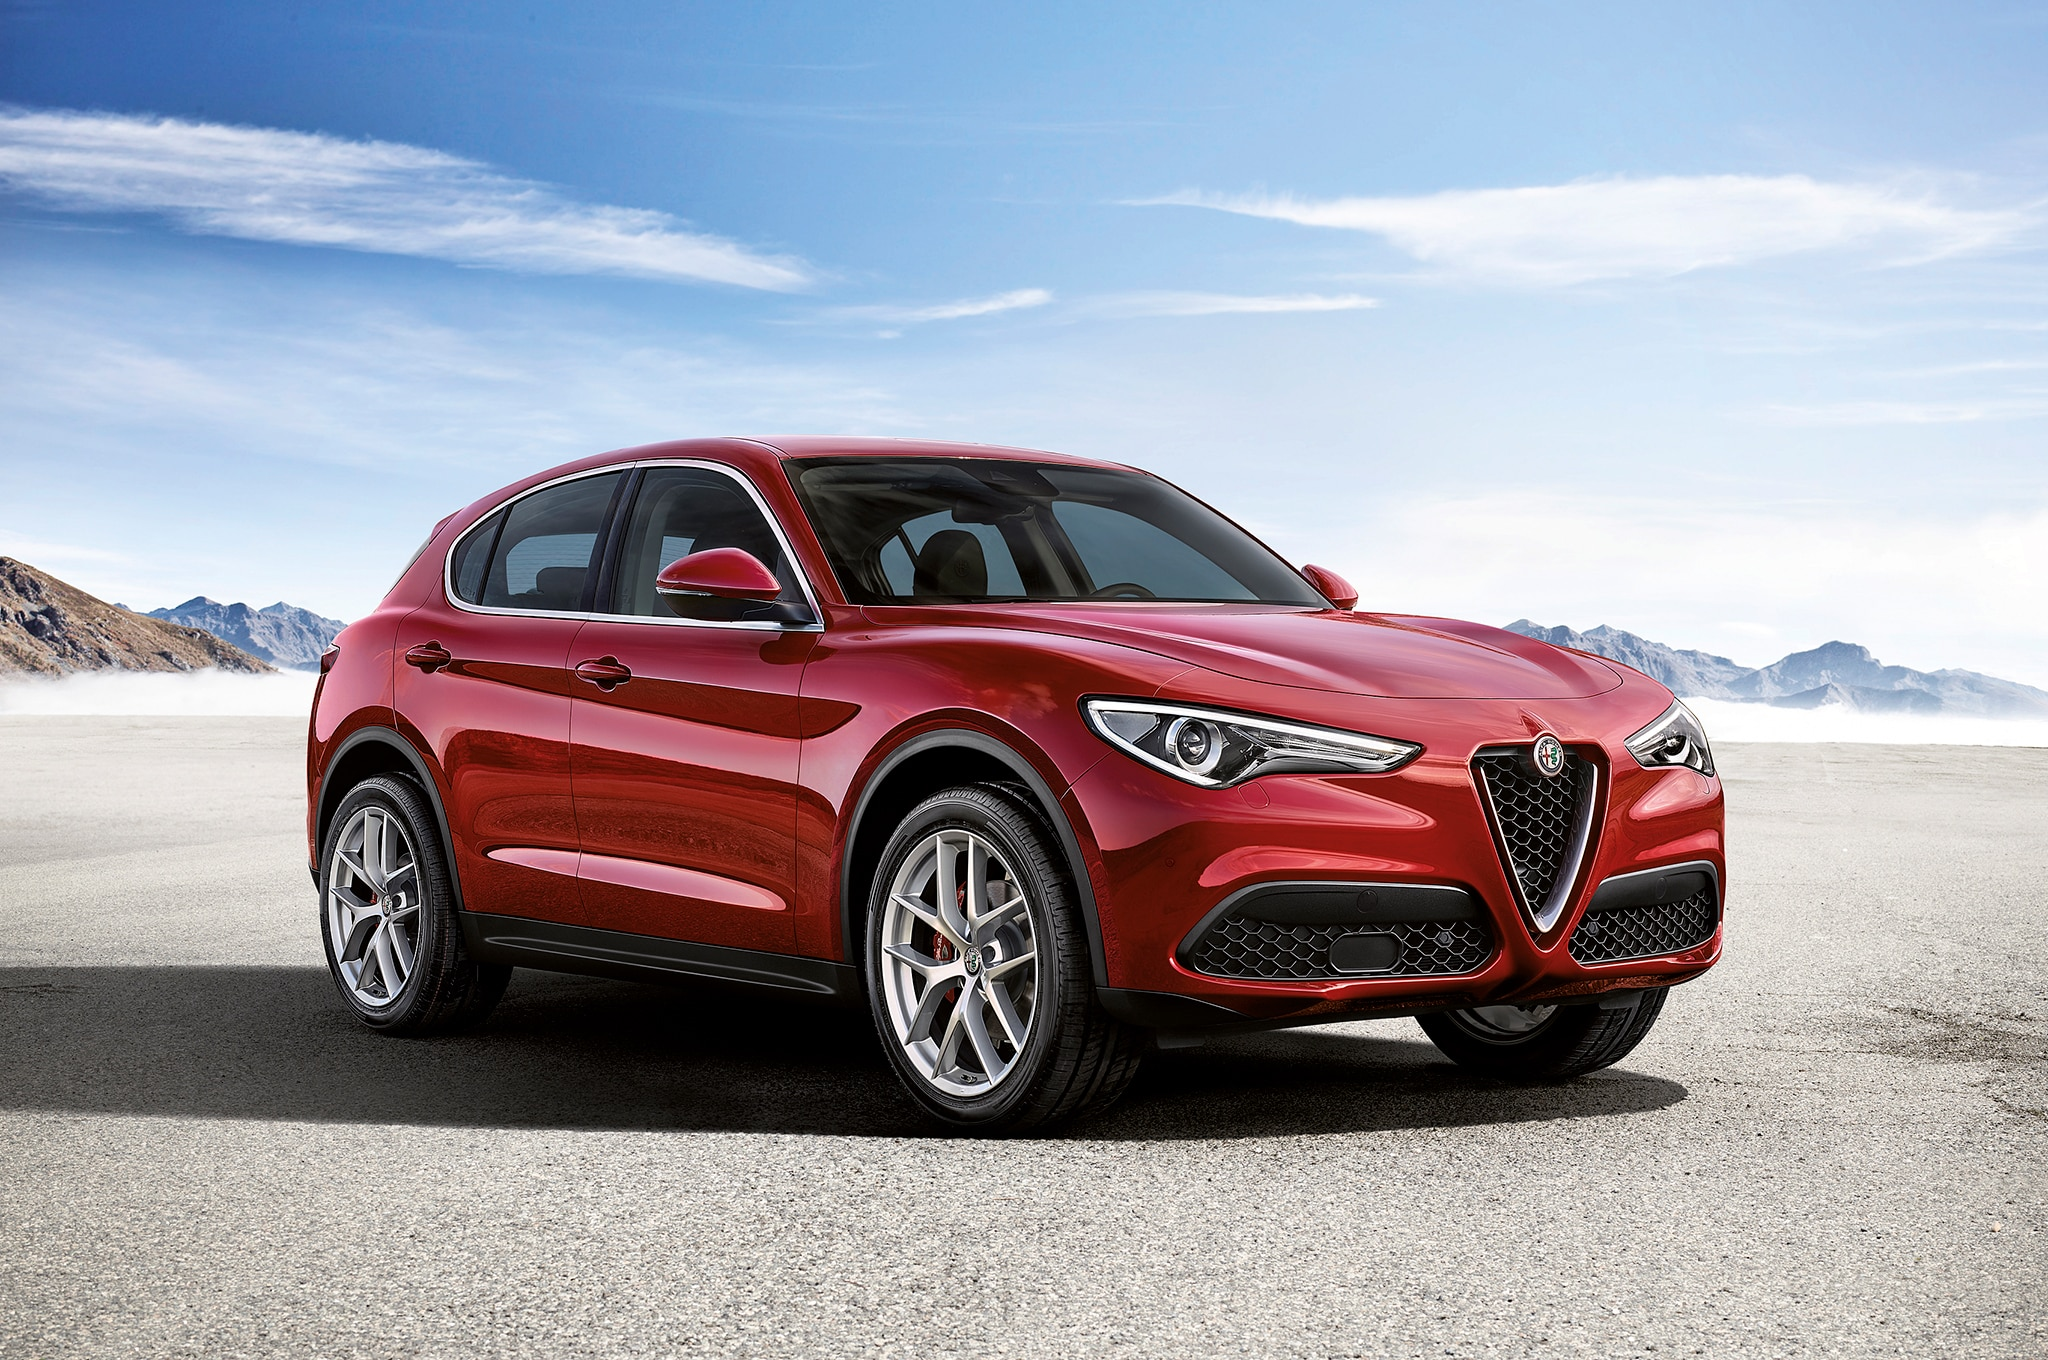 alfa romeo stelvio first edition is now available to order